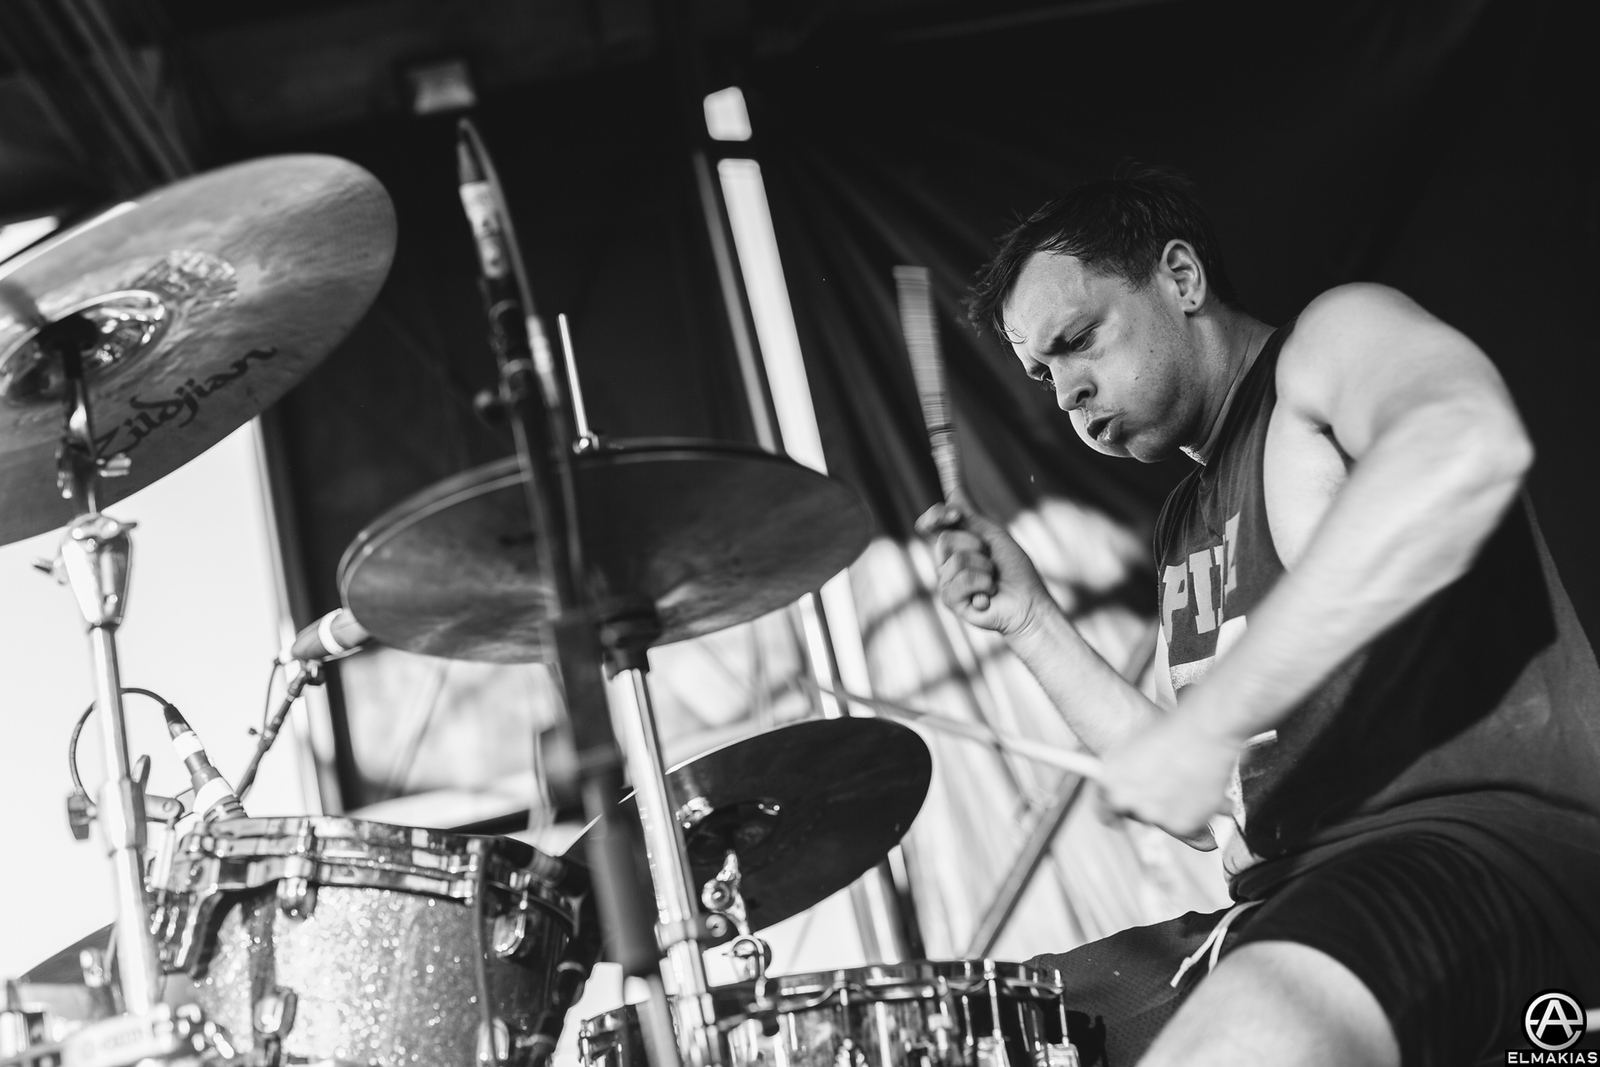 Jake Duhaime of Citizen live at Vans Warped Tour 2015 by Adam Elmakias